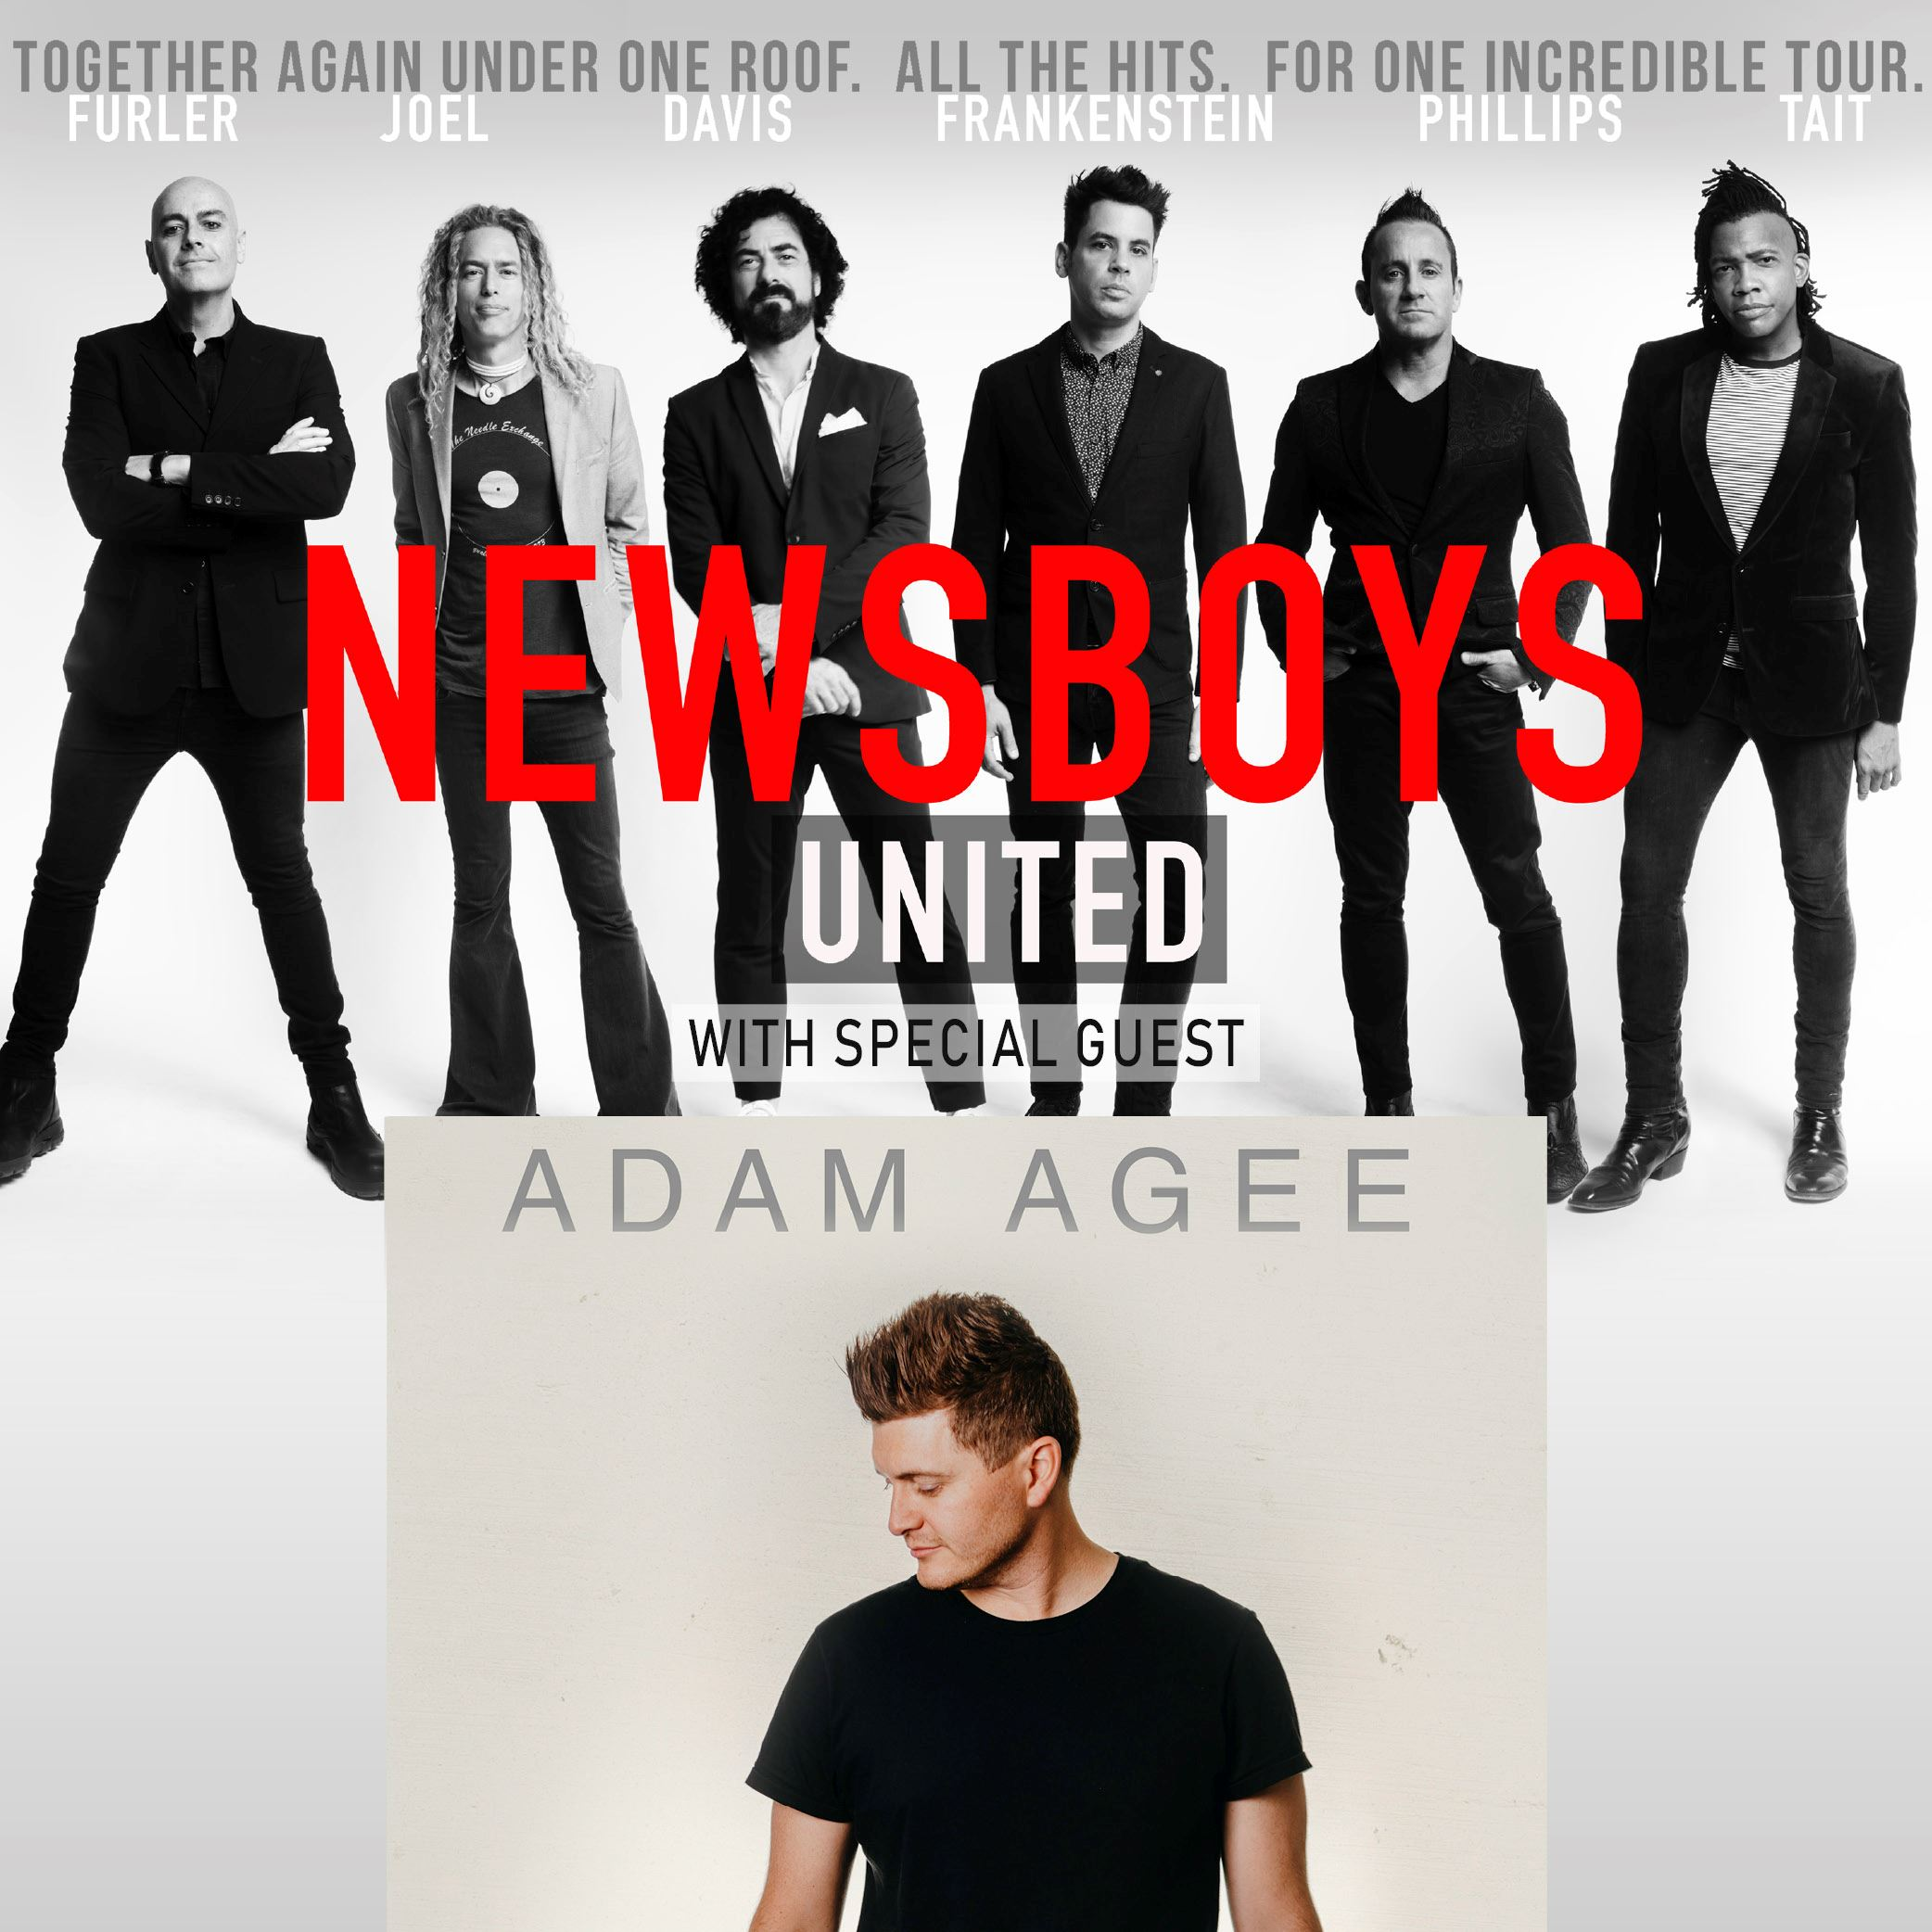 Newsboys United with special guest Adam Agee